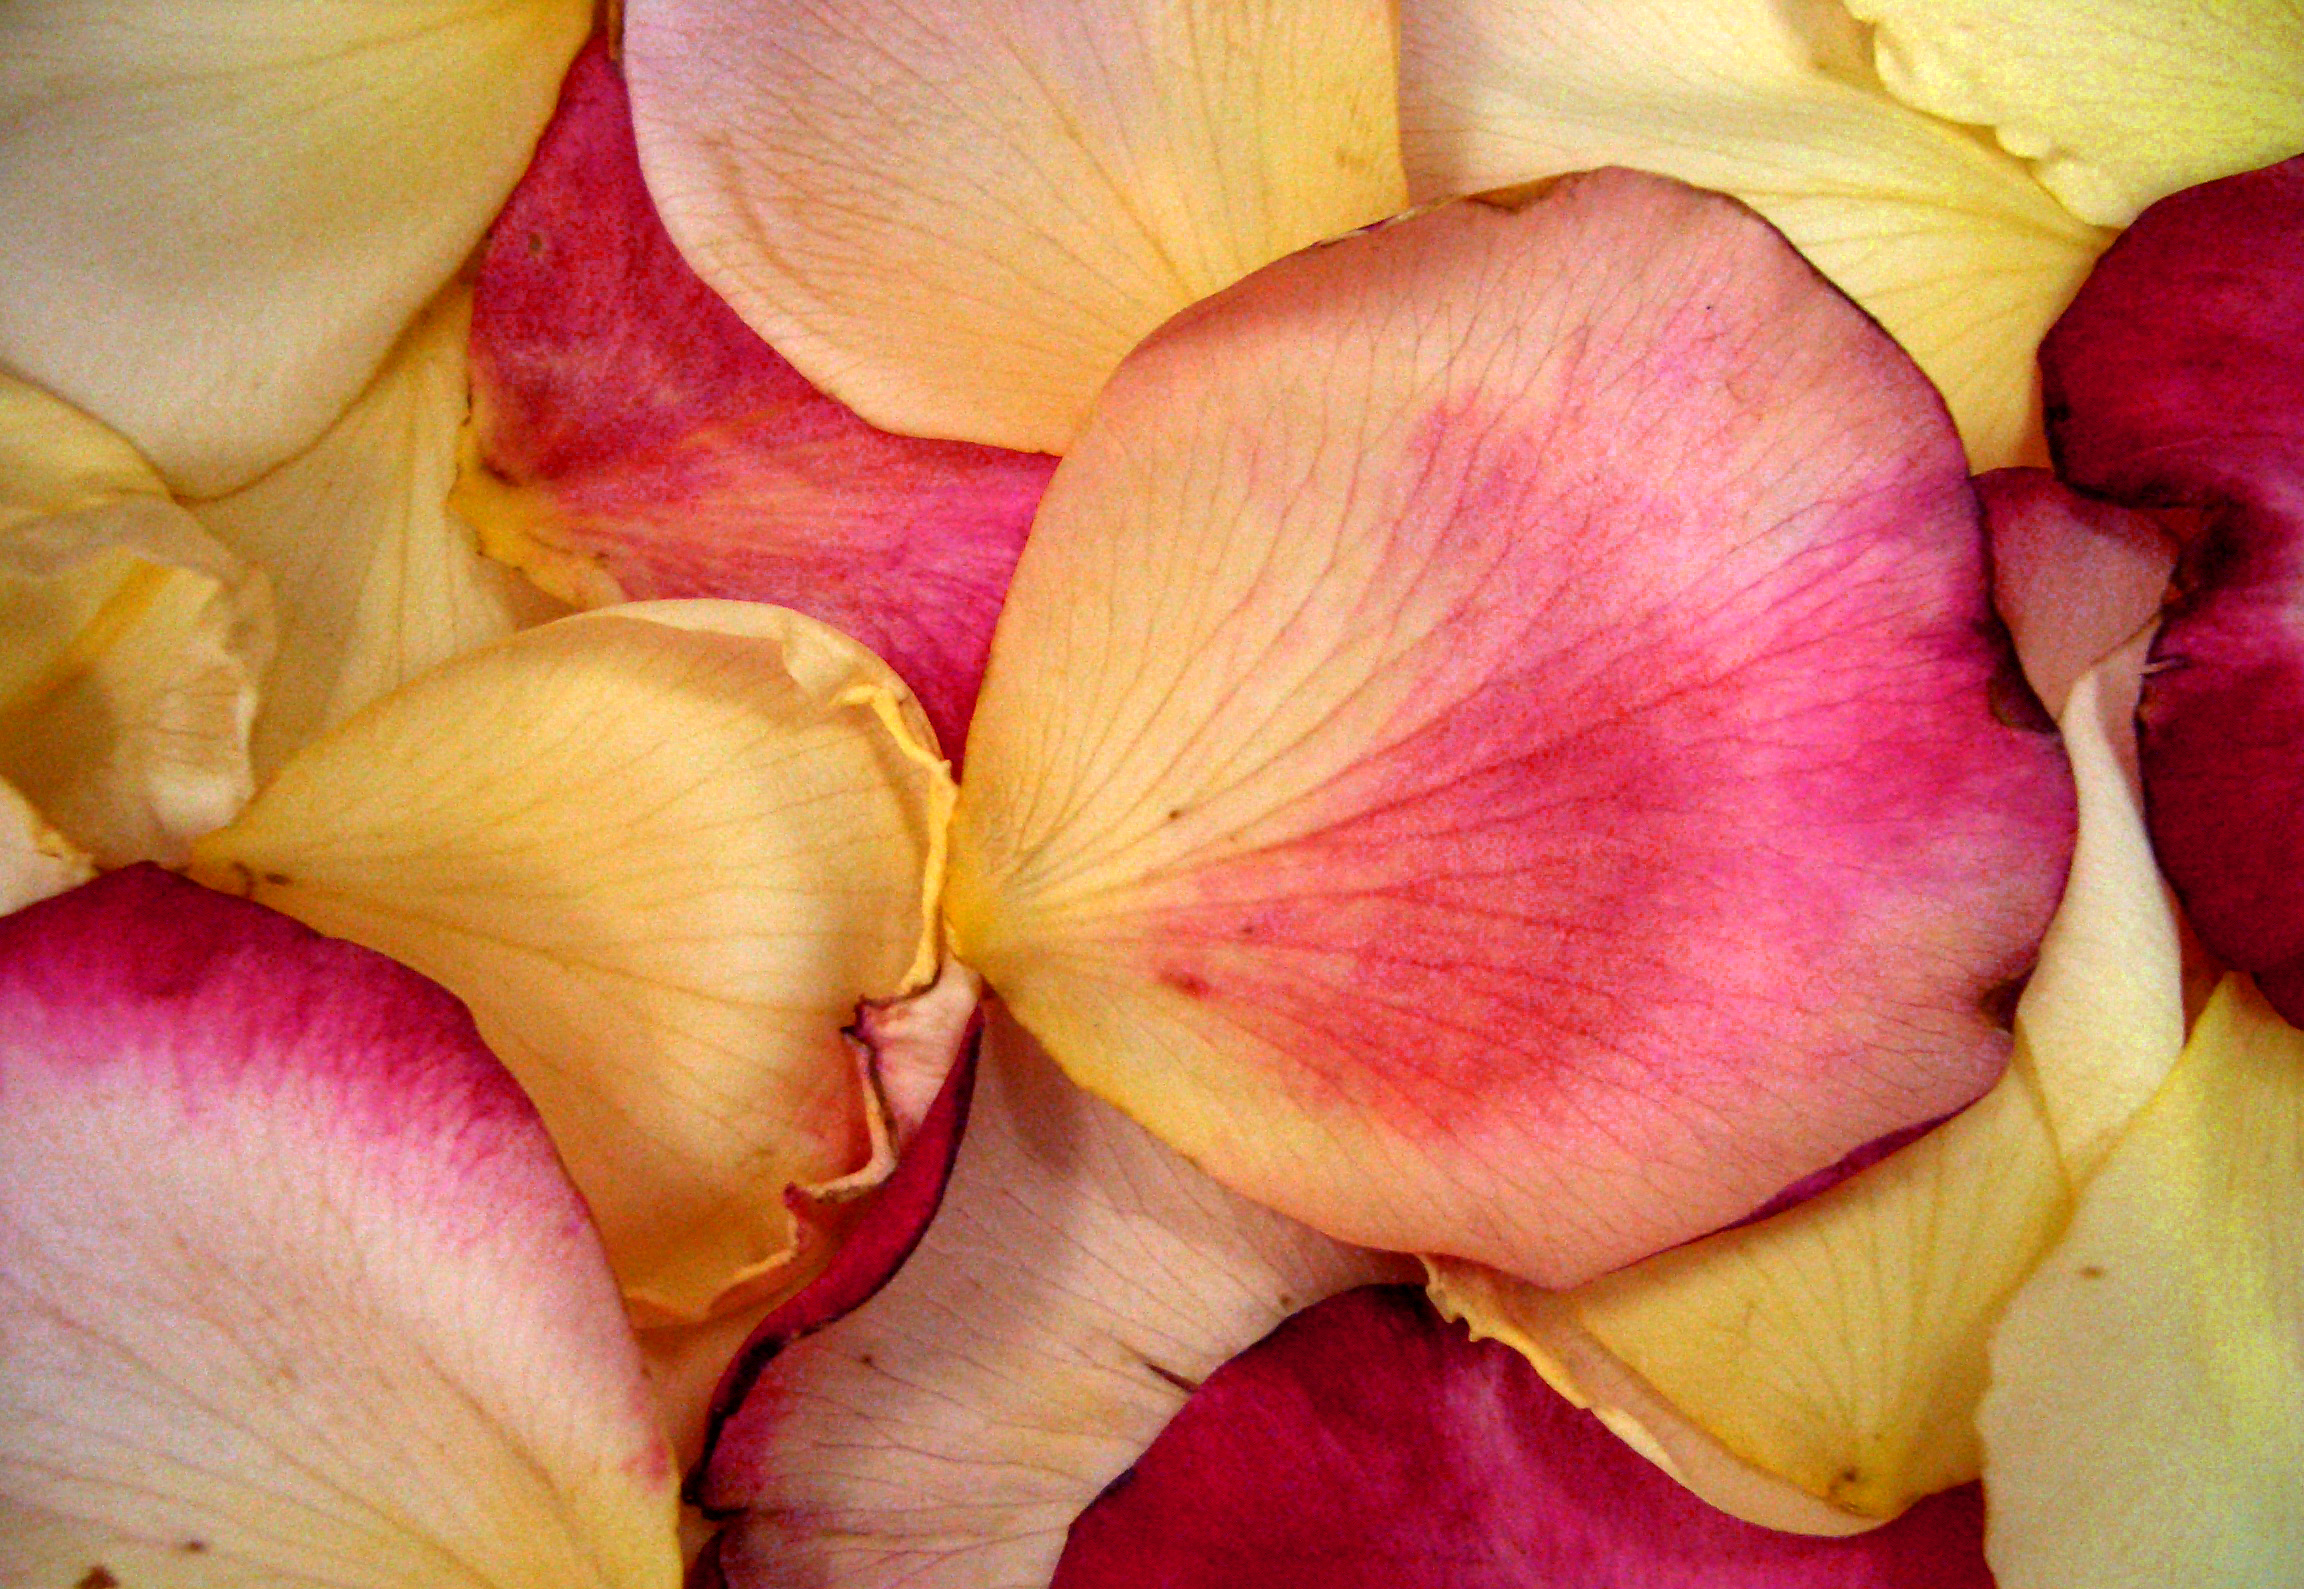 Use rose petals for romance